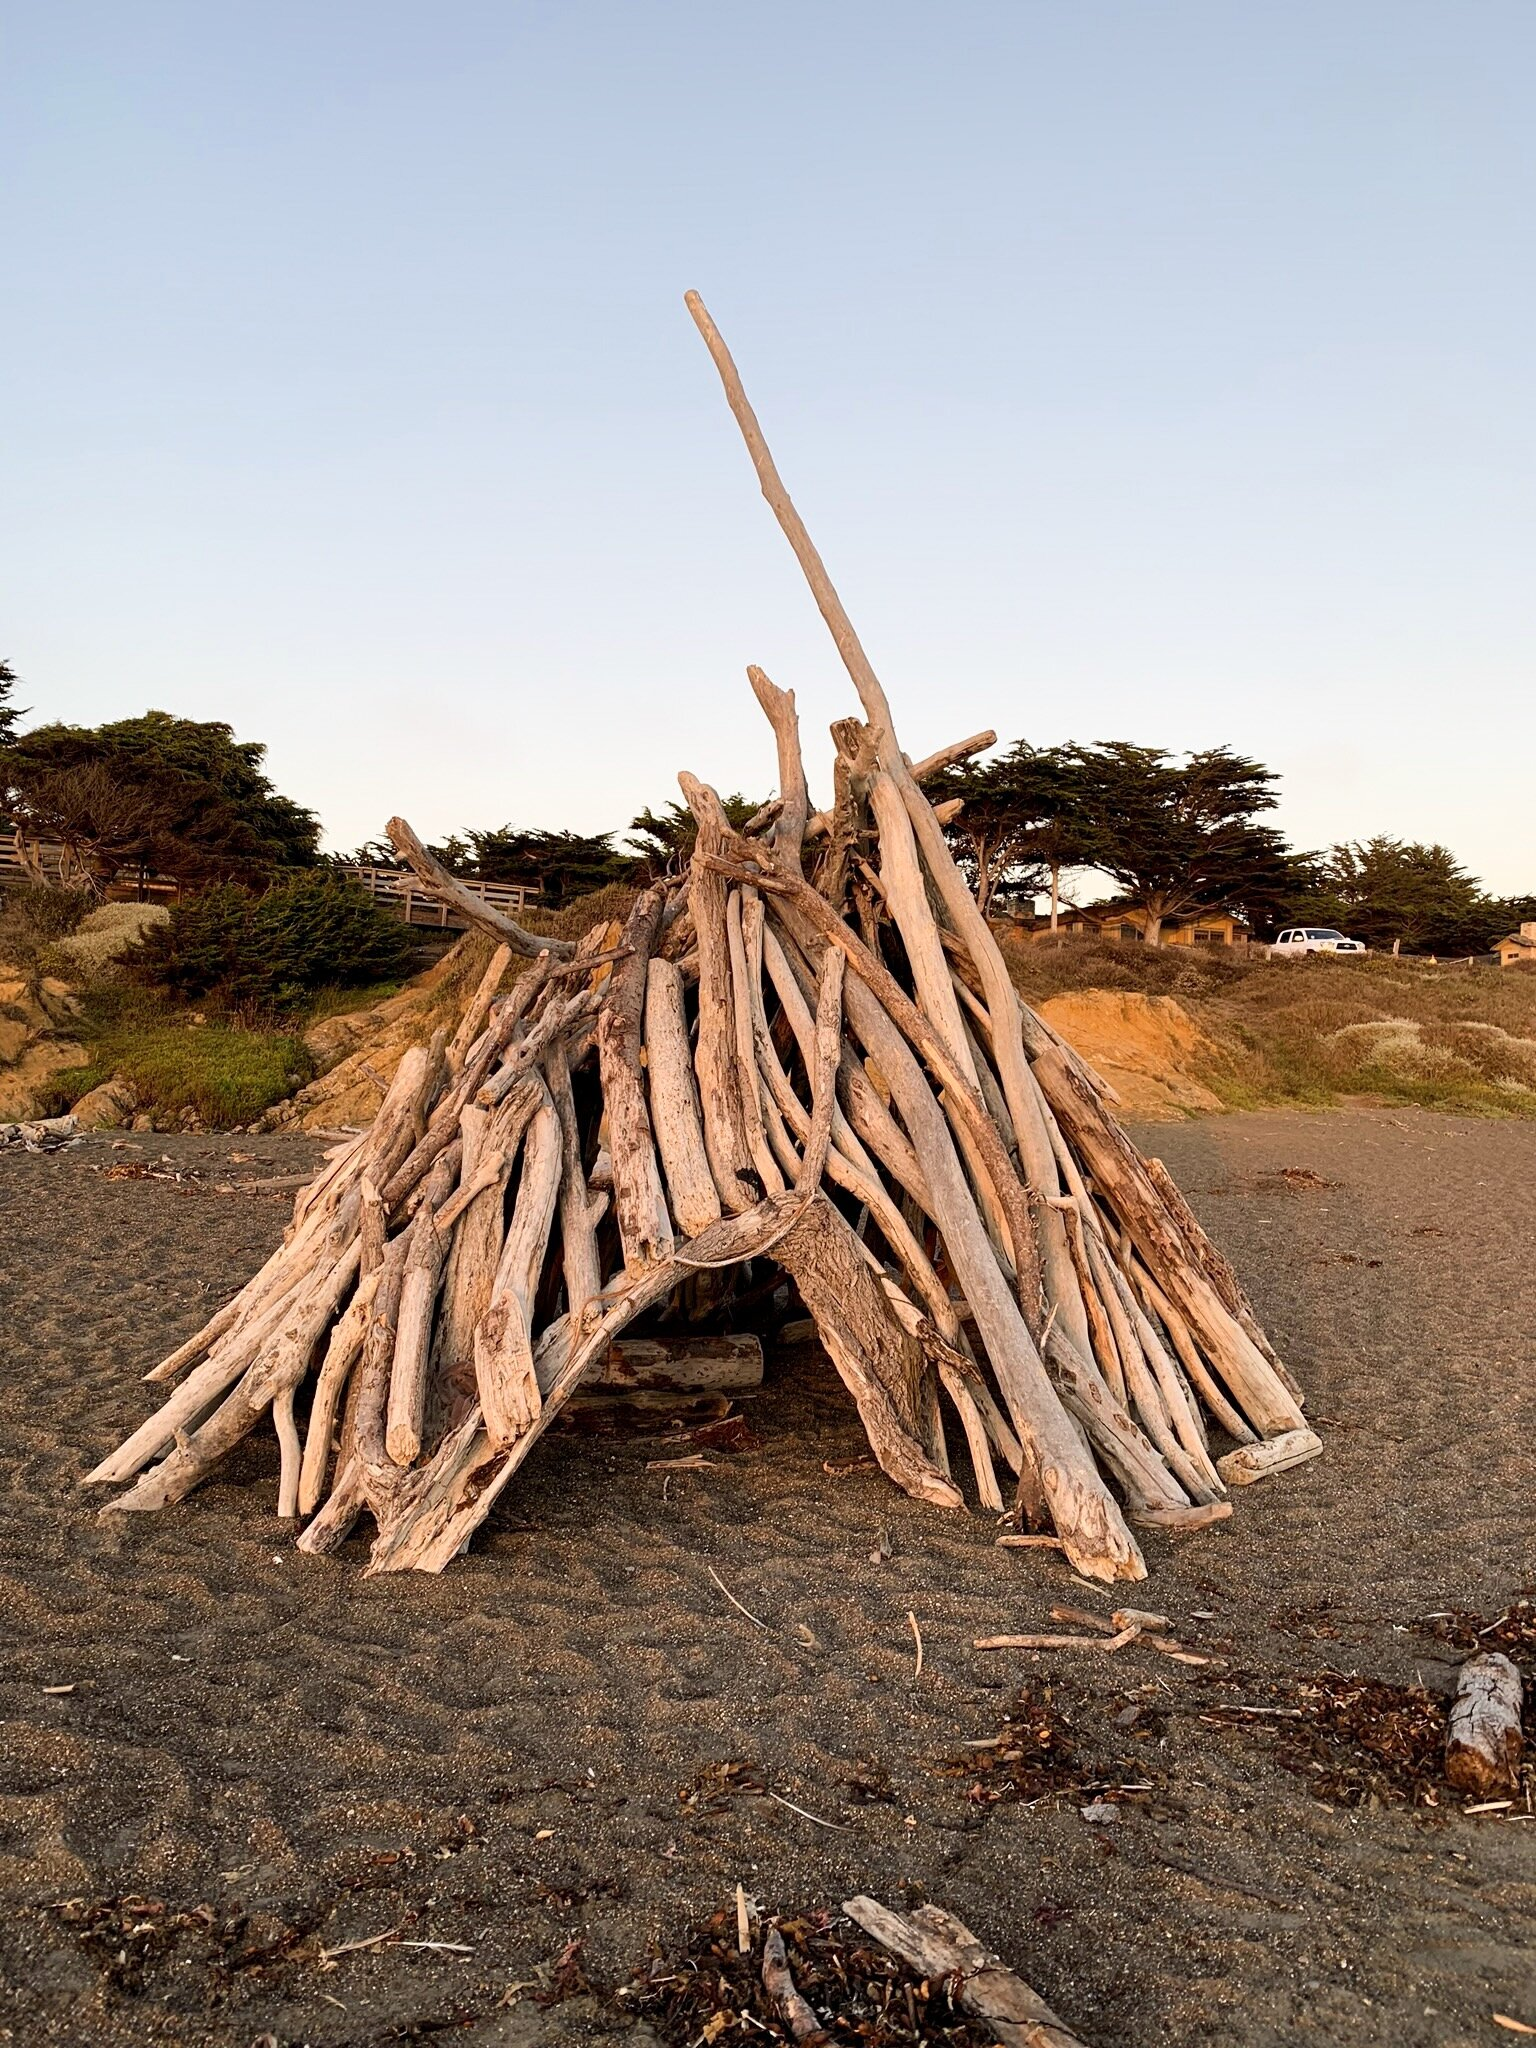 Moonstone Beach driftwood structure at sunset golden hour.